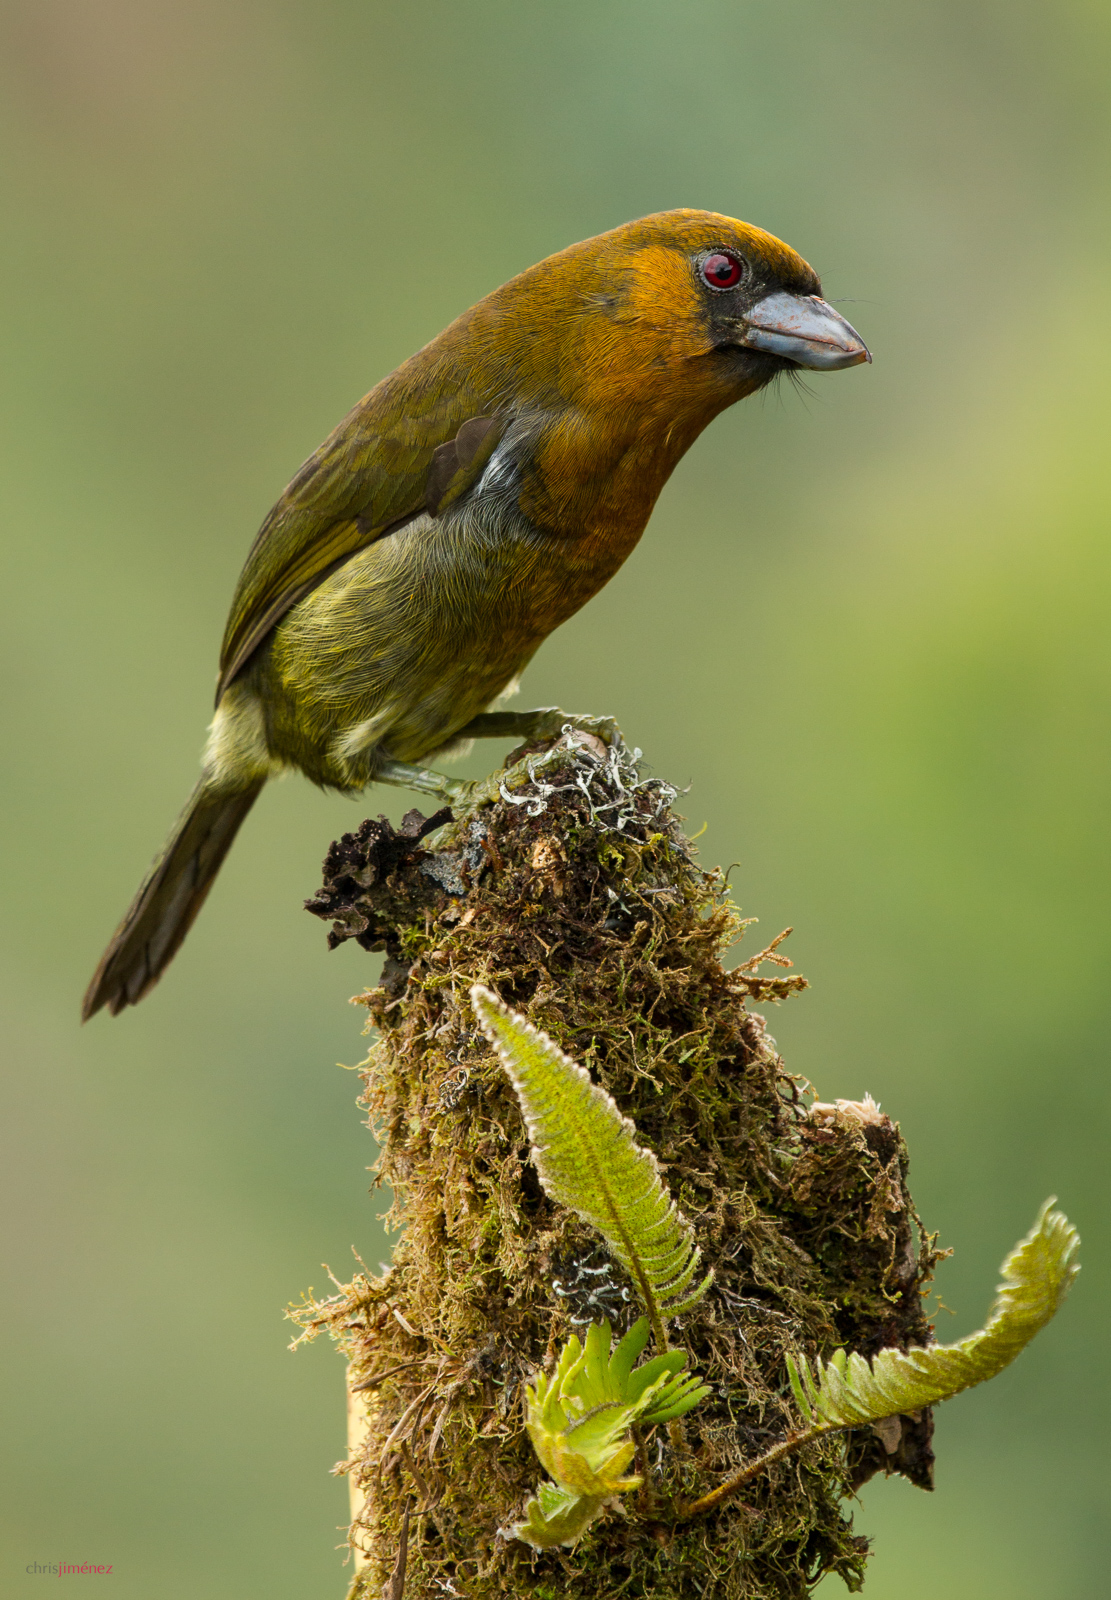 Prong-billed Barbet (Semnornis frantzii)perched on a Banana tree, in Cinchona , Costa Rica.